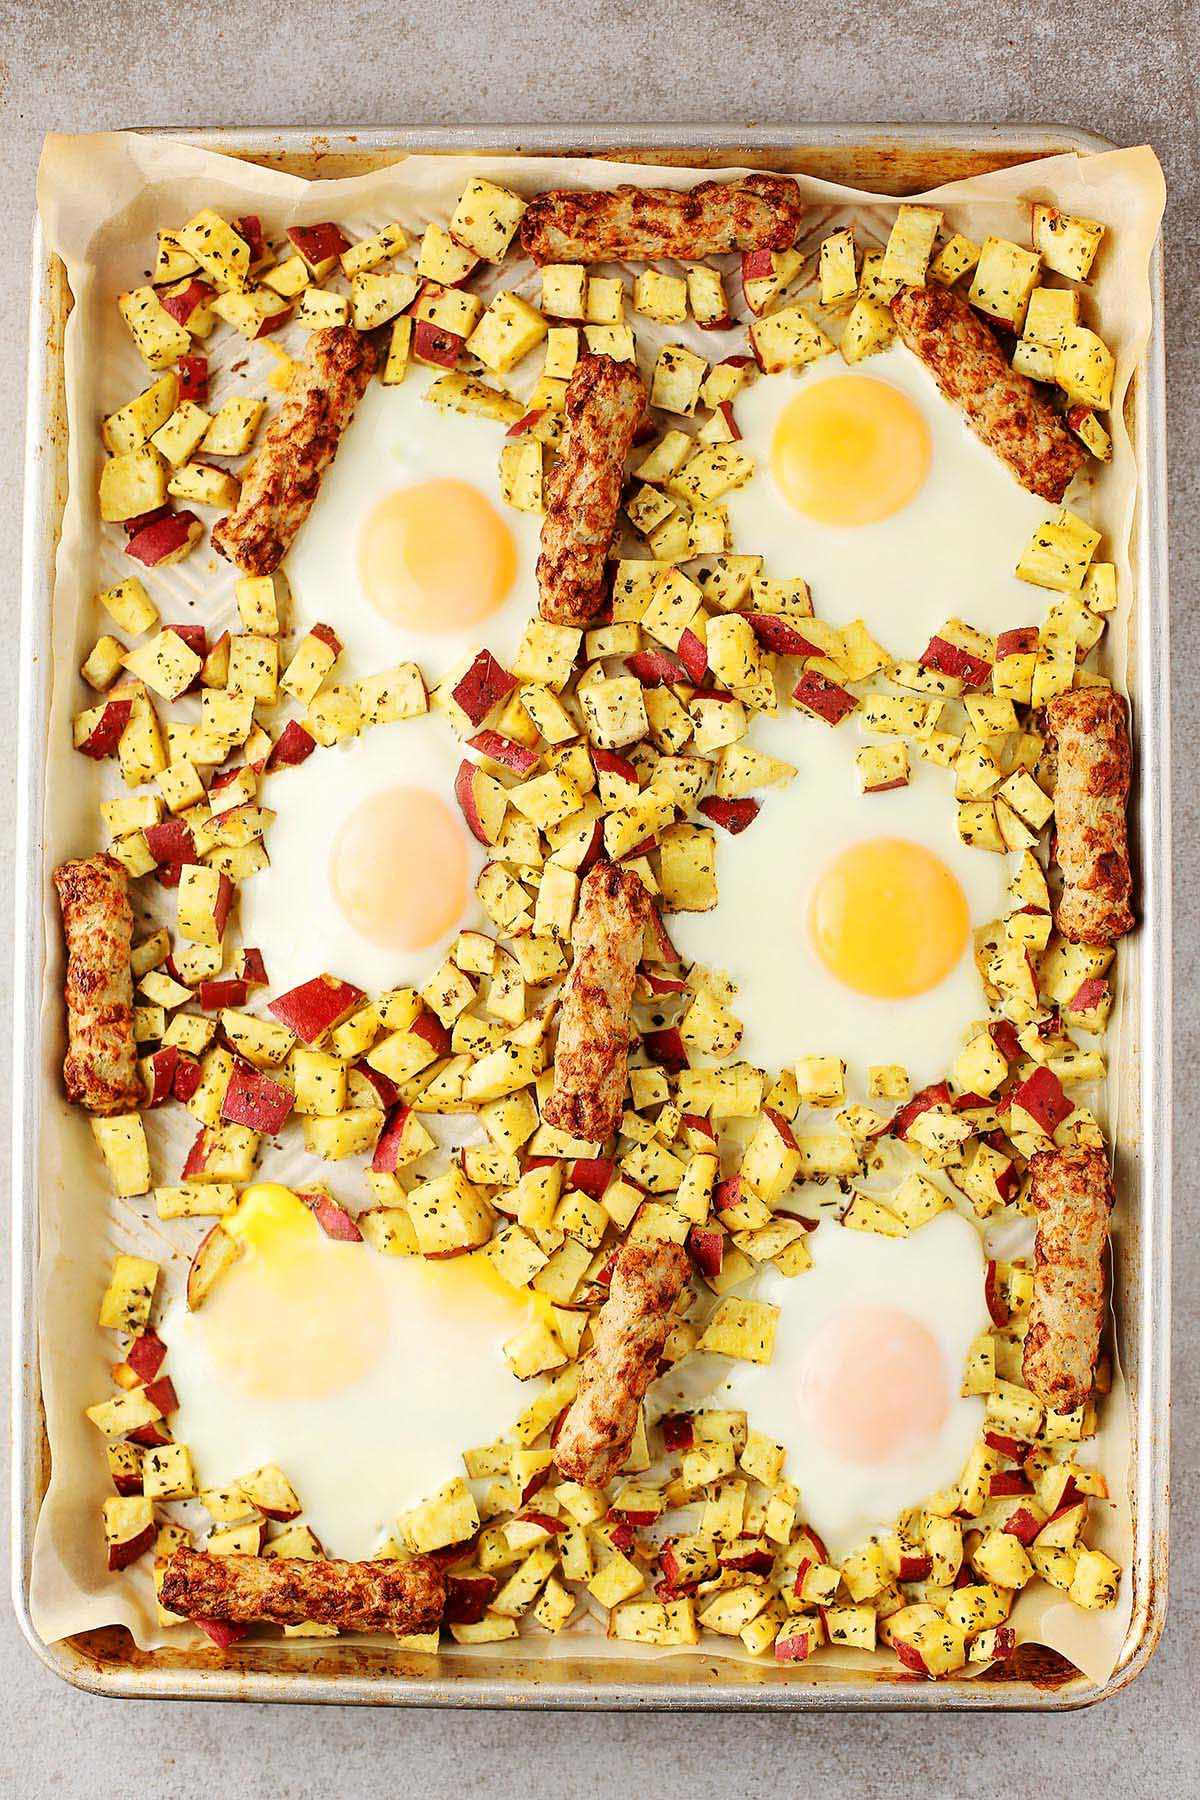 sheet pan with cooked eggs, sausage and sweet potatoes